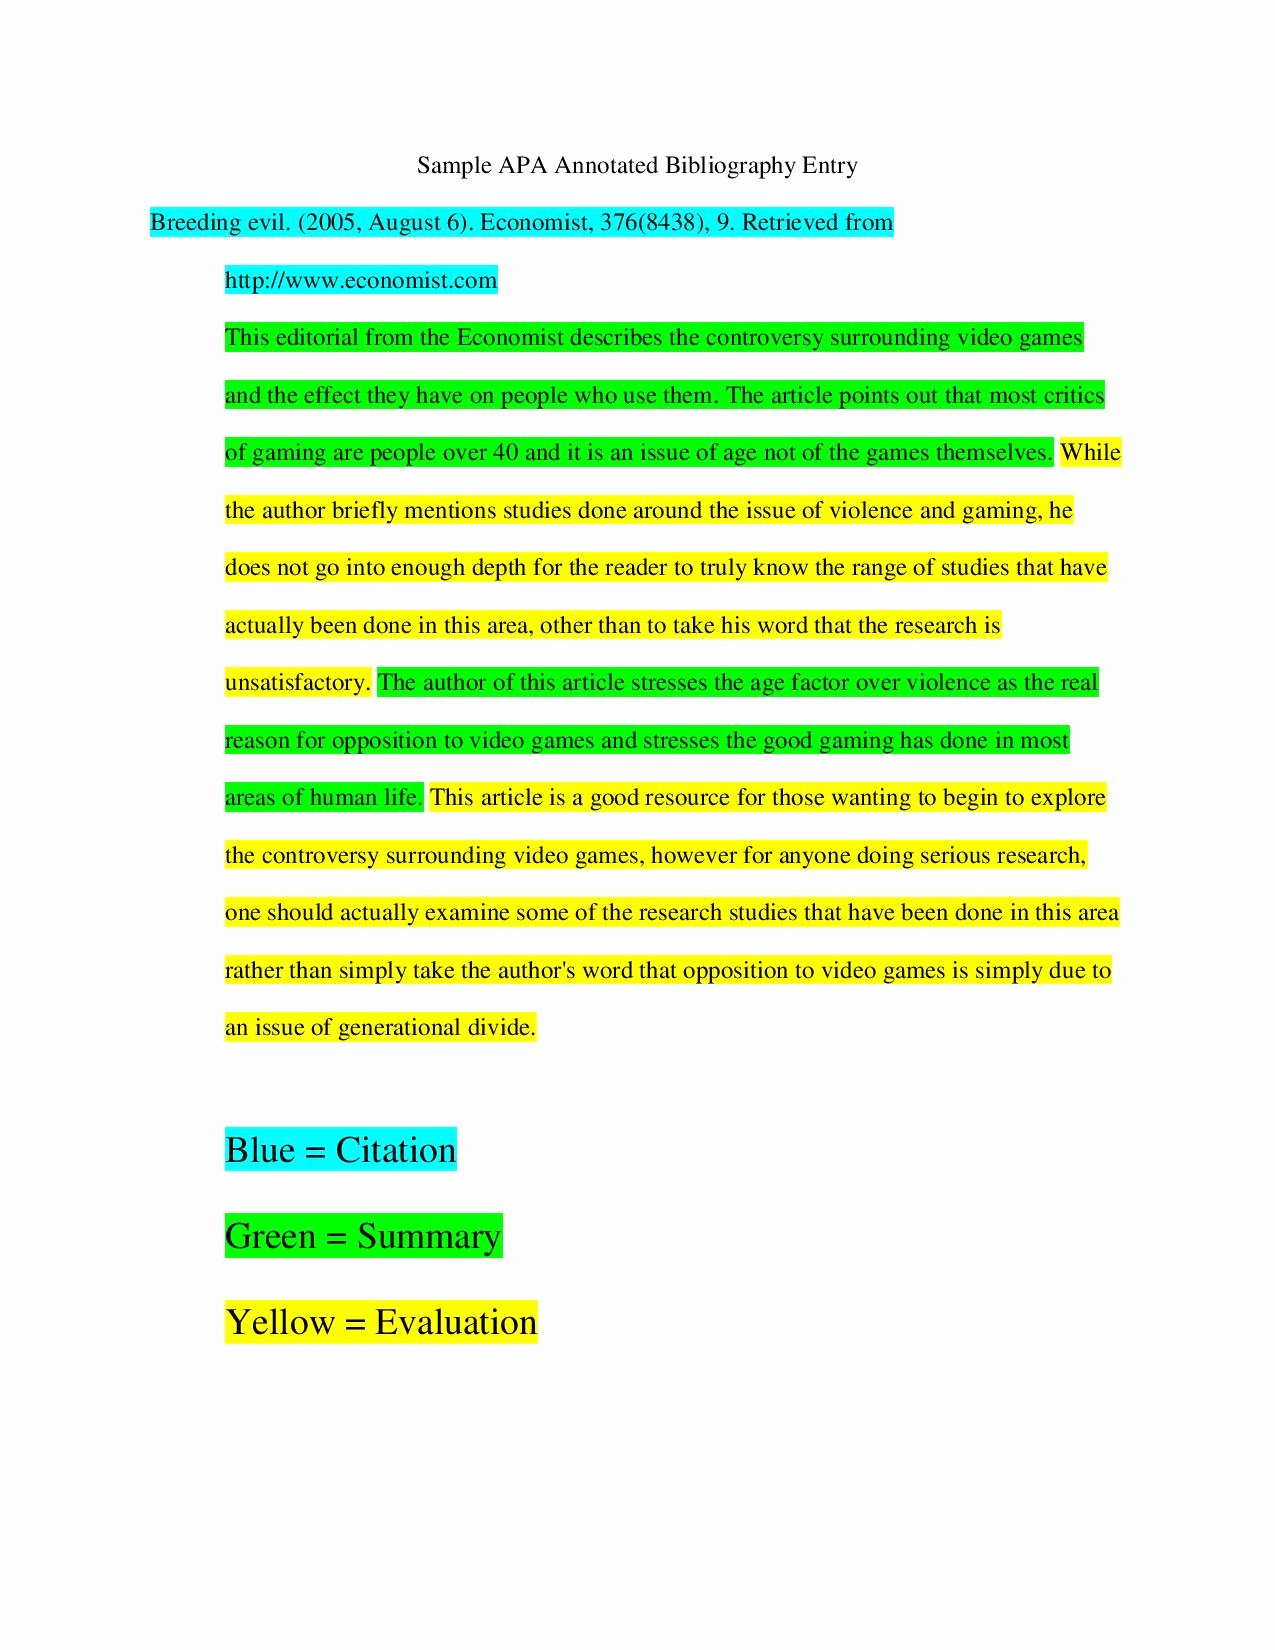 Sample Apa Annotated Bibliography Best Of Does An Annotated Bibliography Need A Conclusion